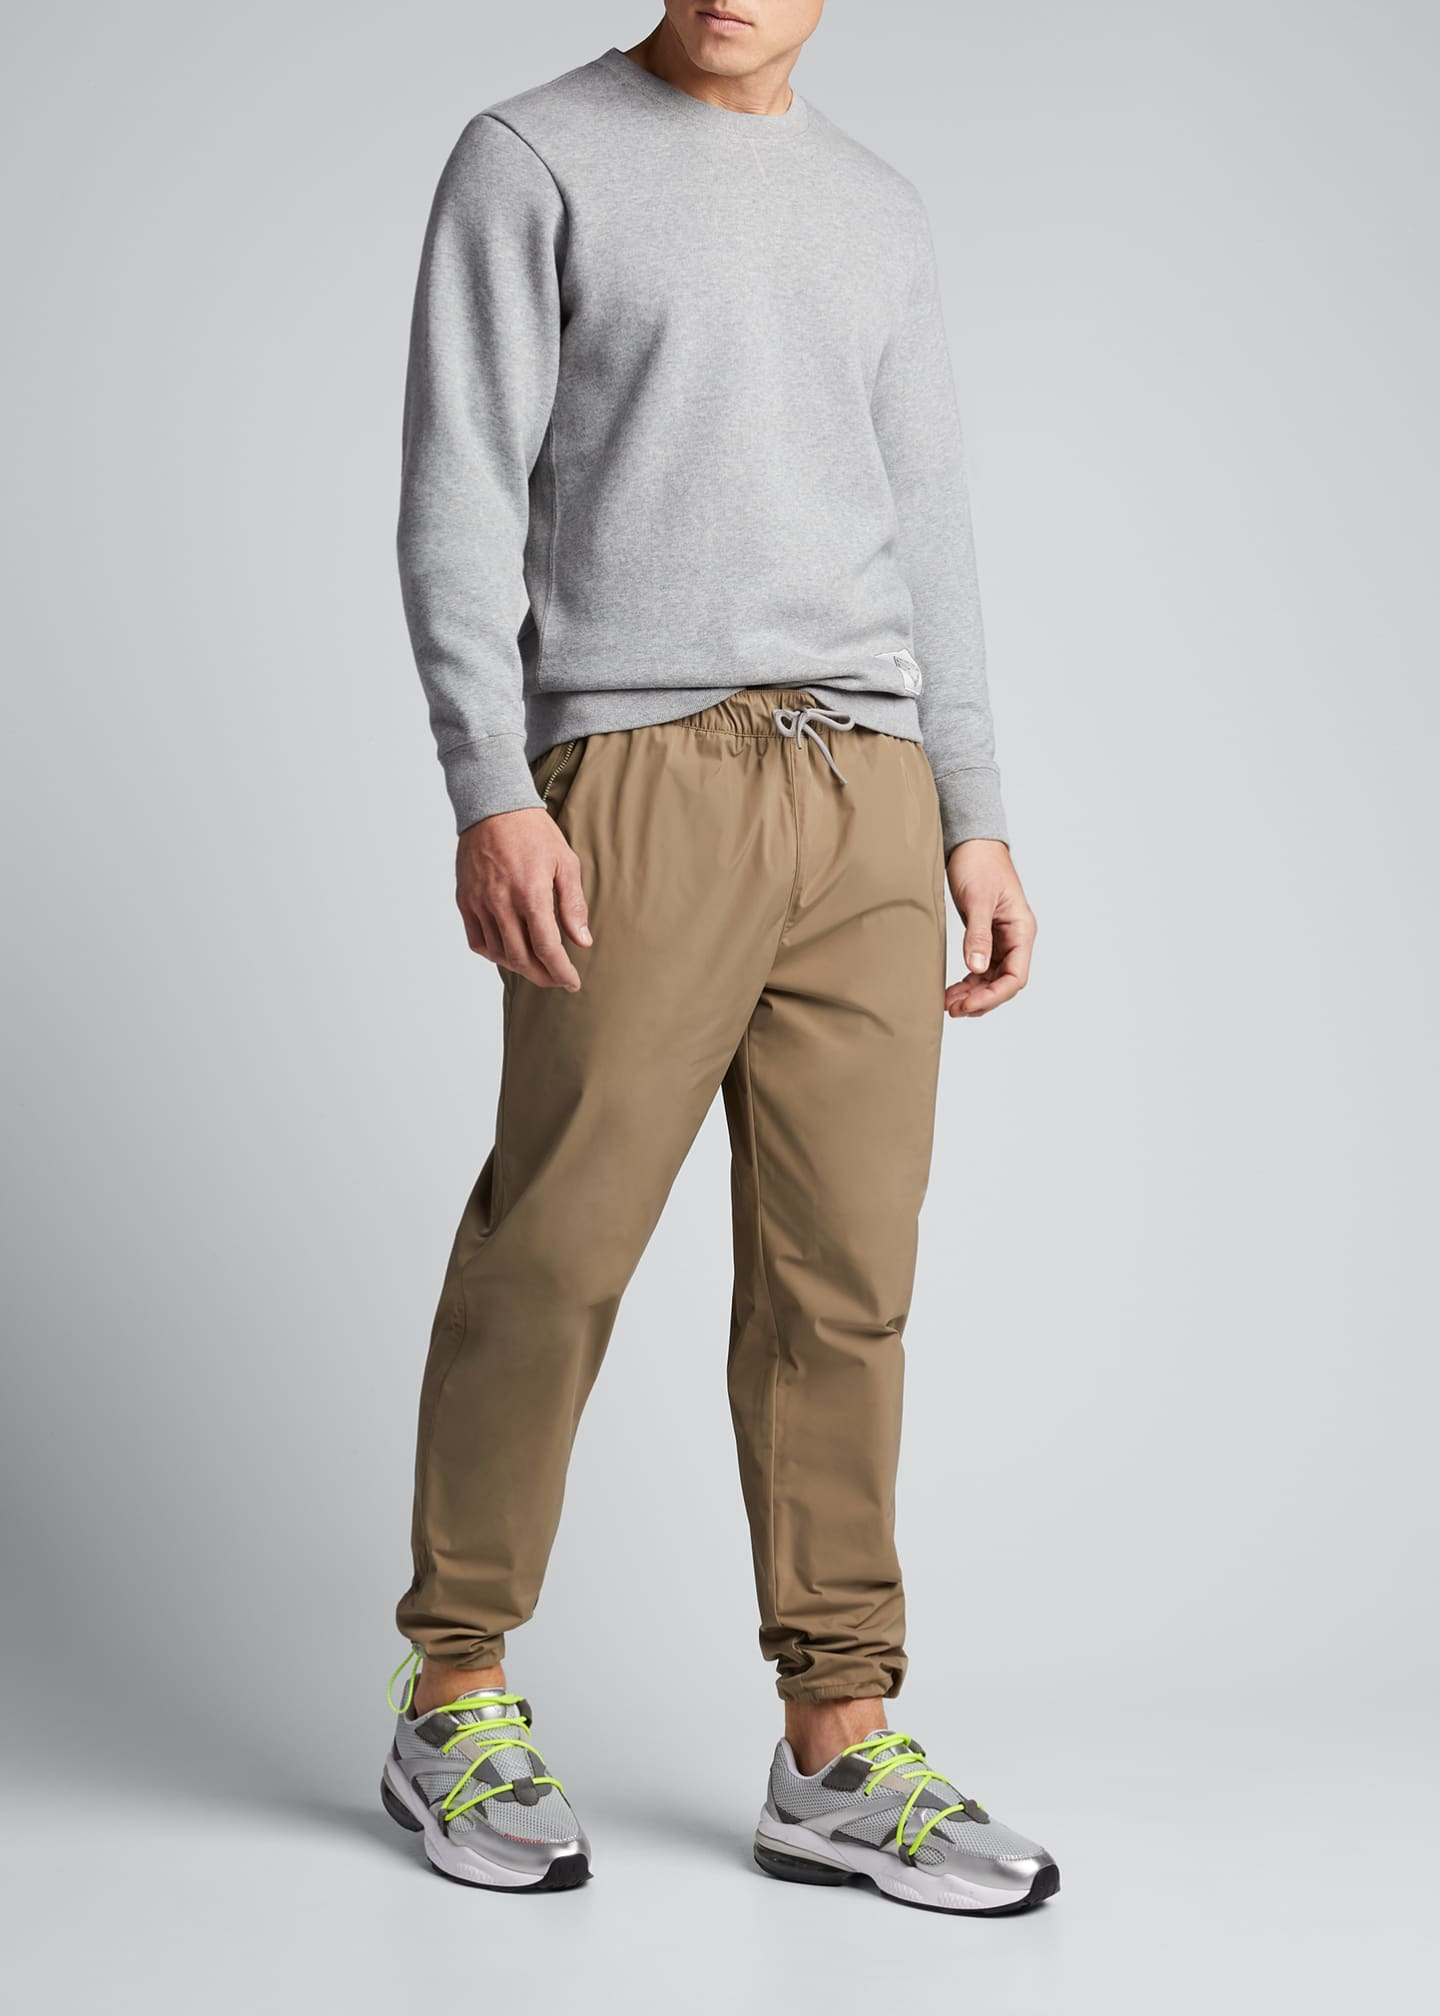 Image 1 of 5: Men's Meadow Trail Nylon Athletic Pants